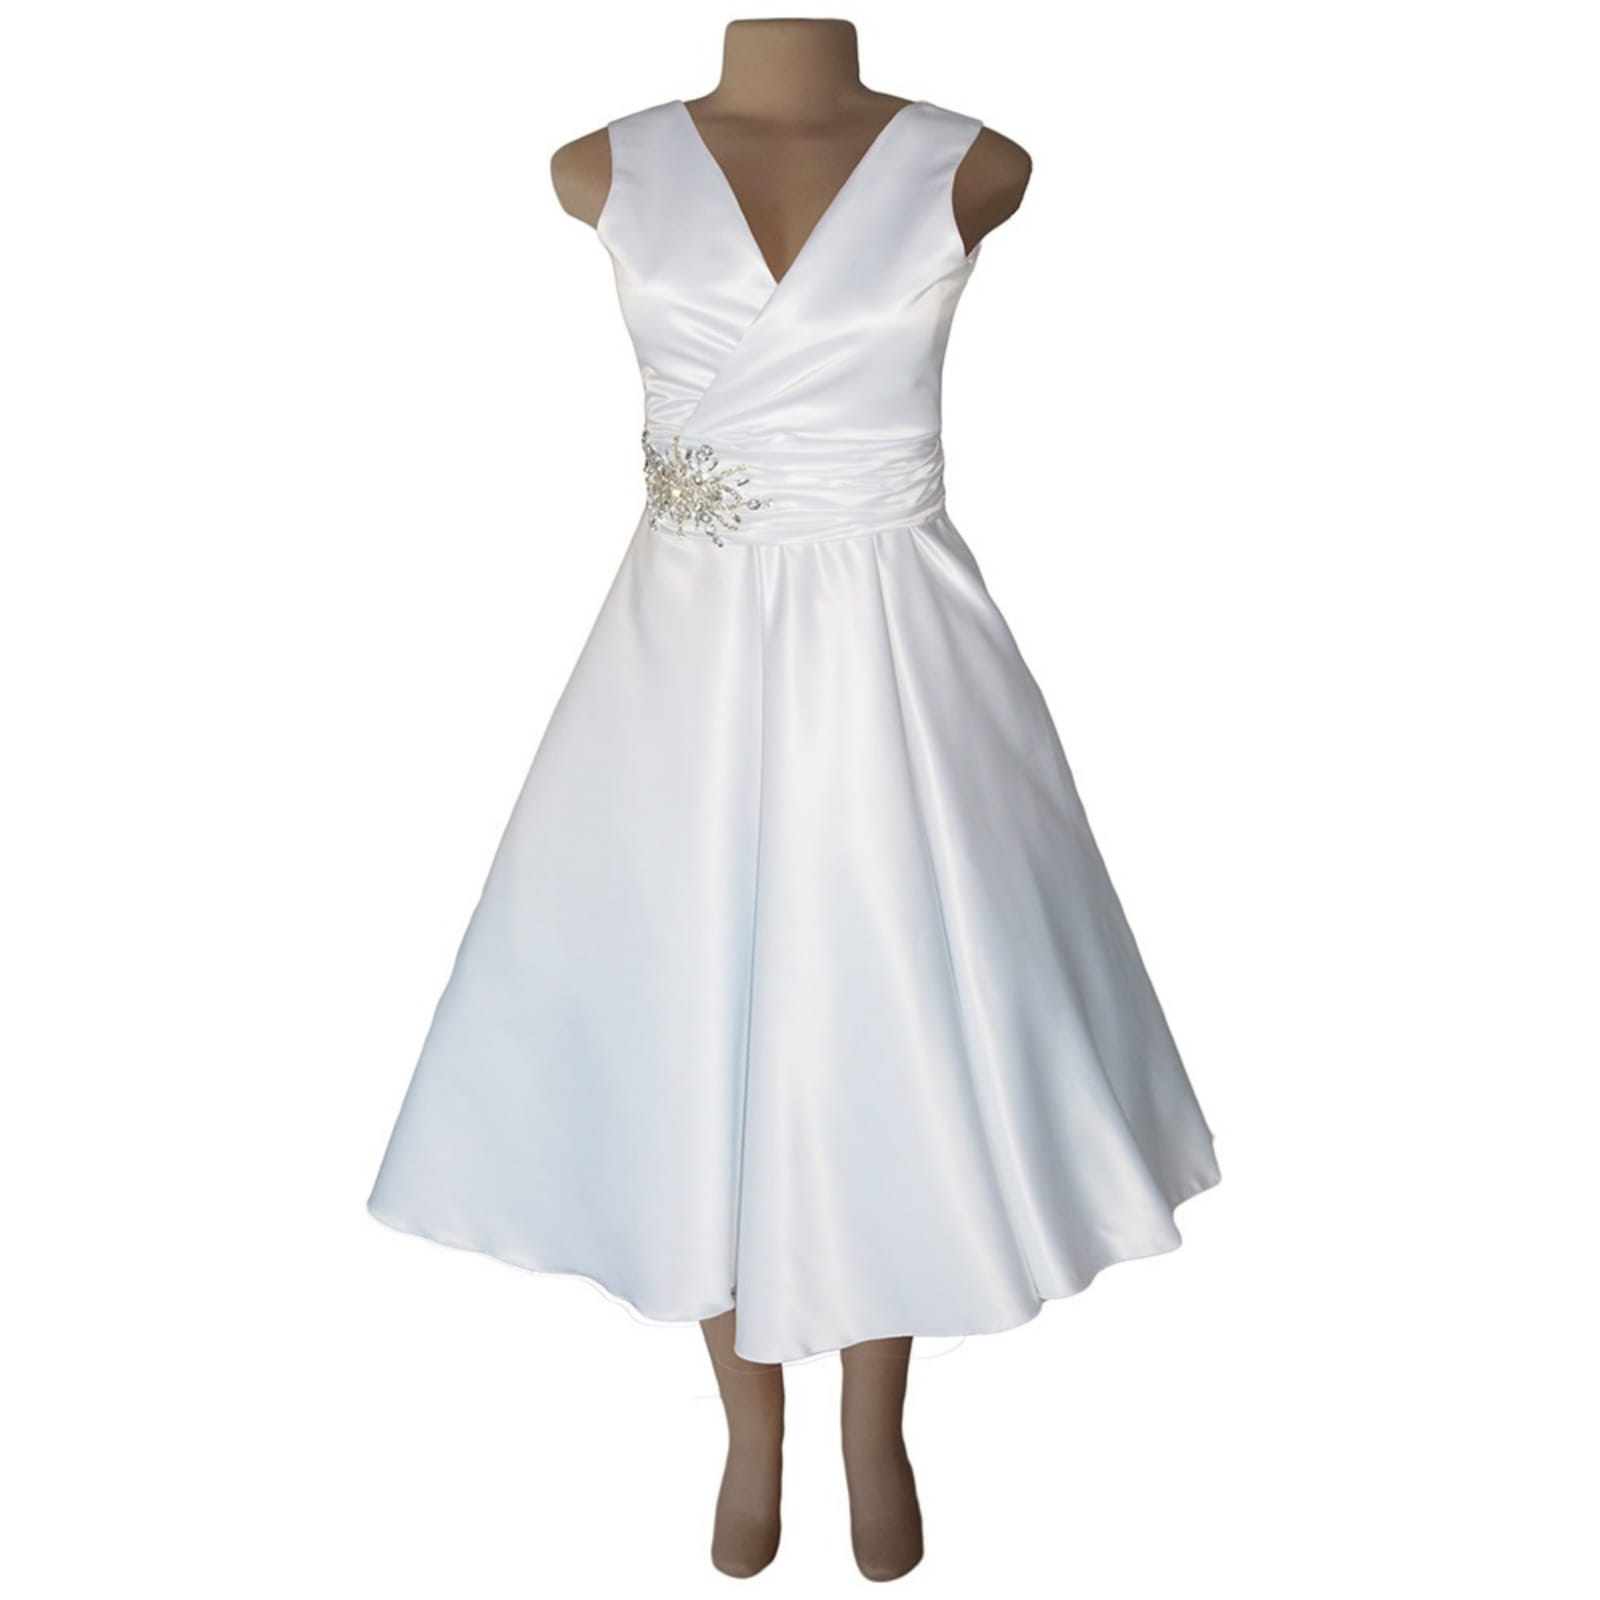 White satin 3/4 length v neck custom made wedding dress 4 white satin 3/4 length v neck custom made wedding dress, with a cross bust effect, with a ruched belt detailed with silver bling. Back detailed with buttons. With a 3/4 sleeve rounded white bolero.